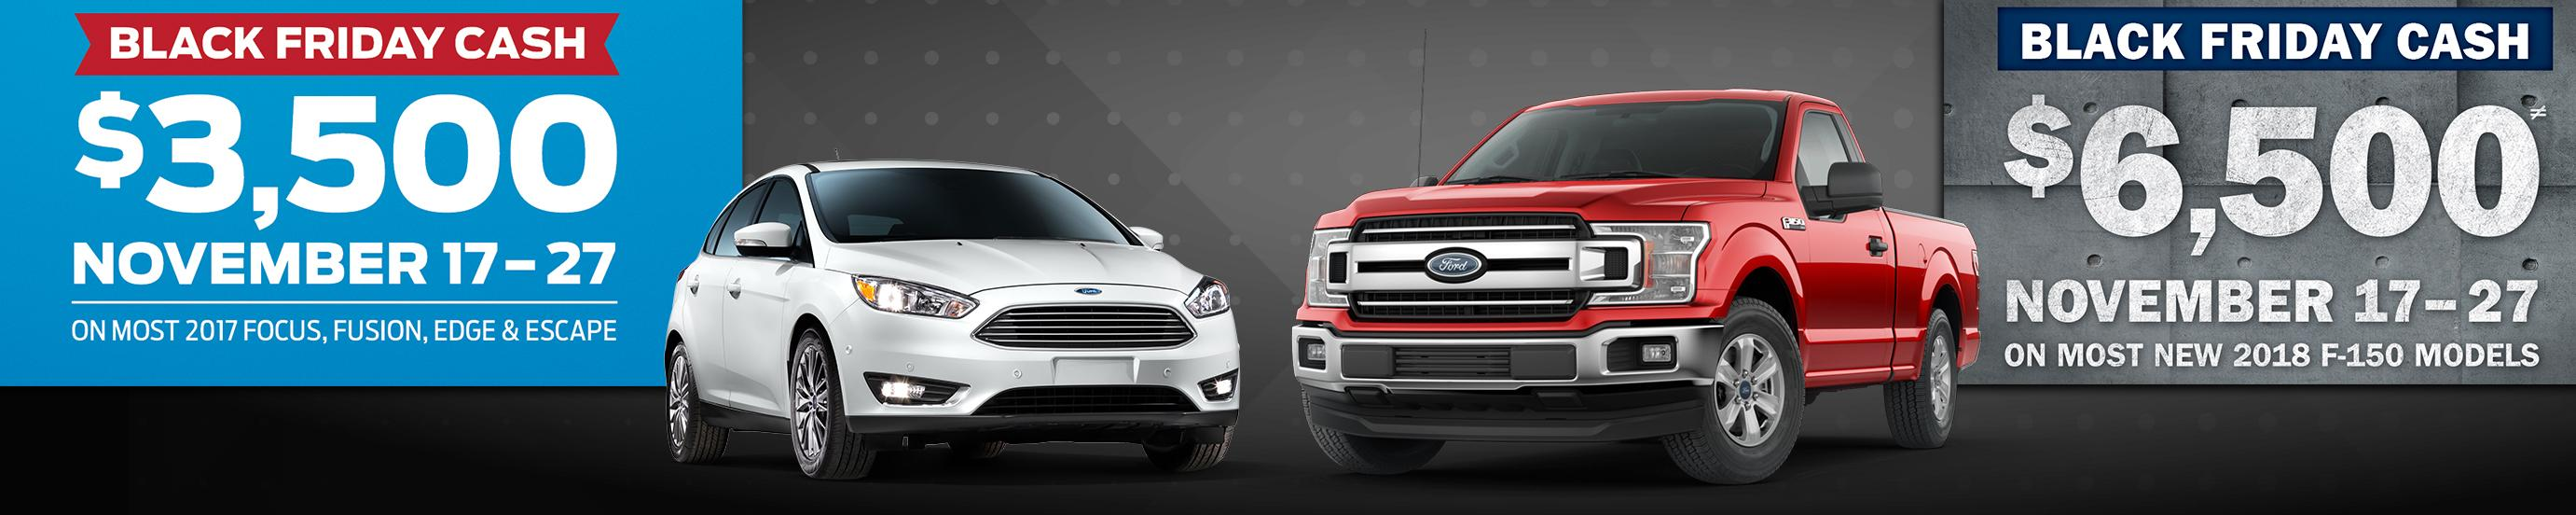 Black Friday at Terrace Totem and Snow Valley Ford